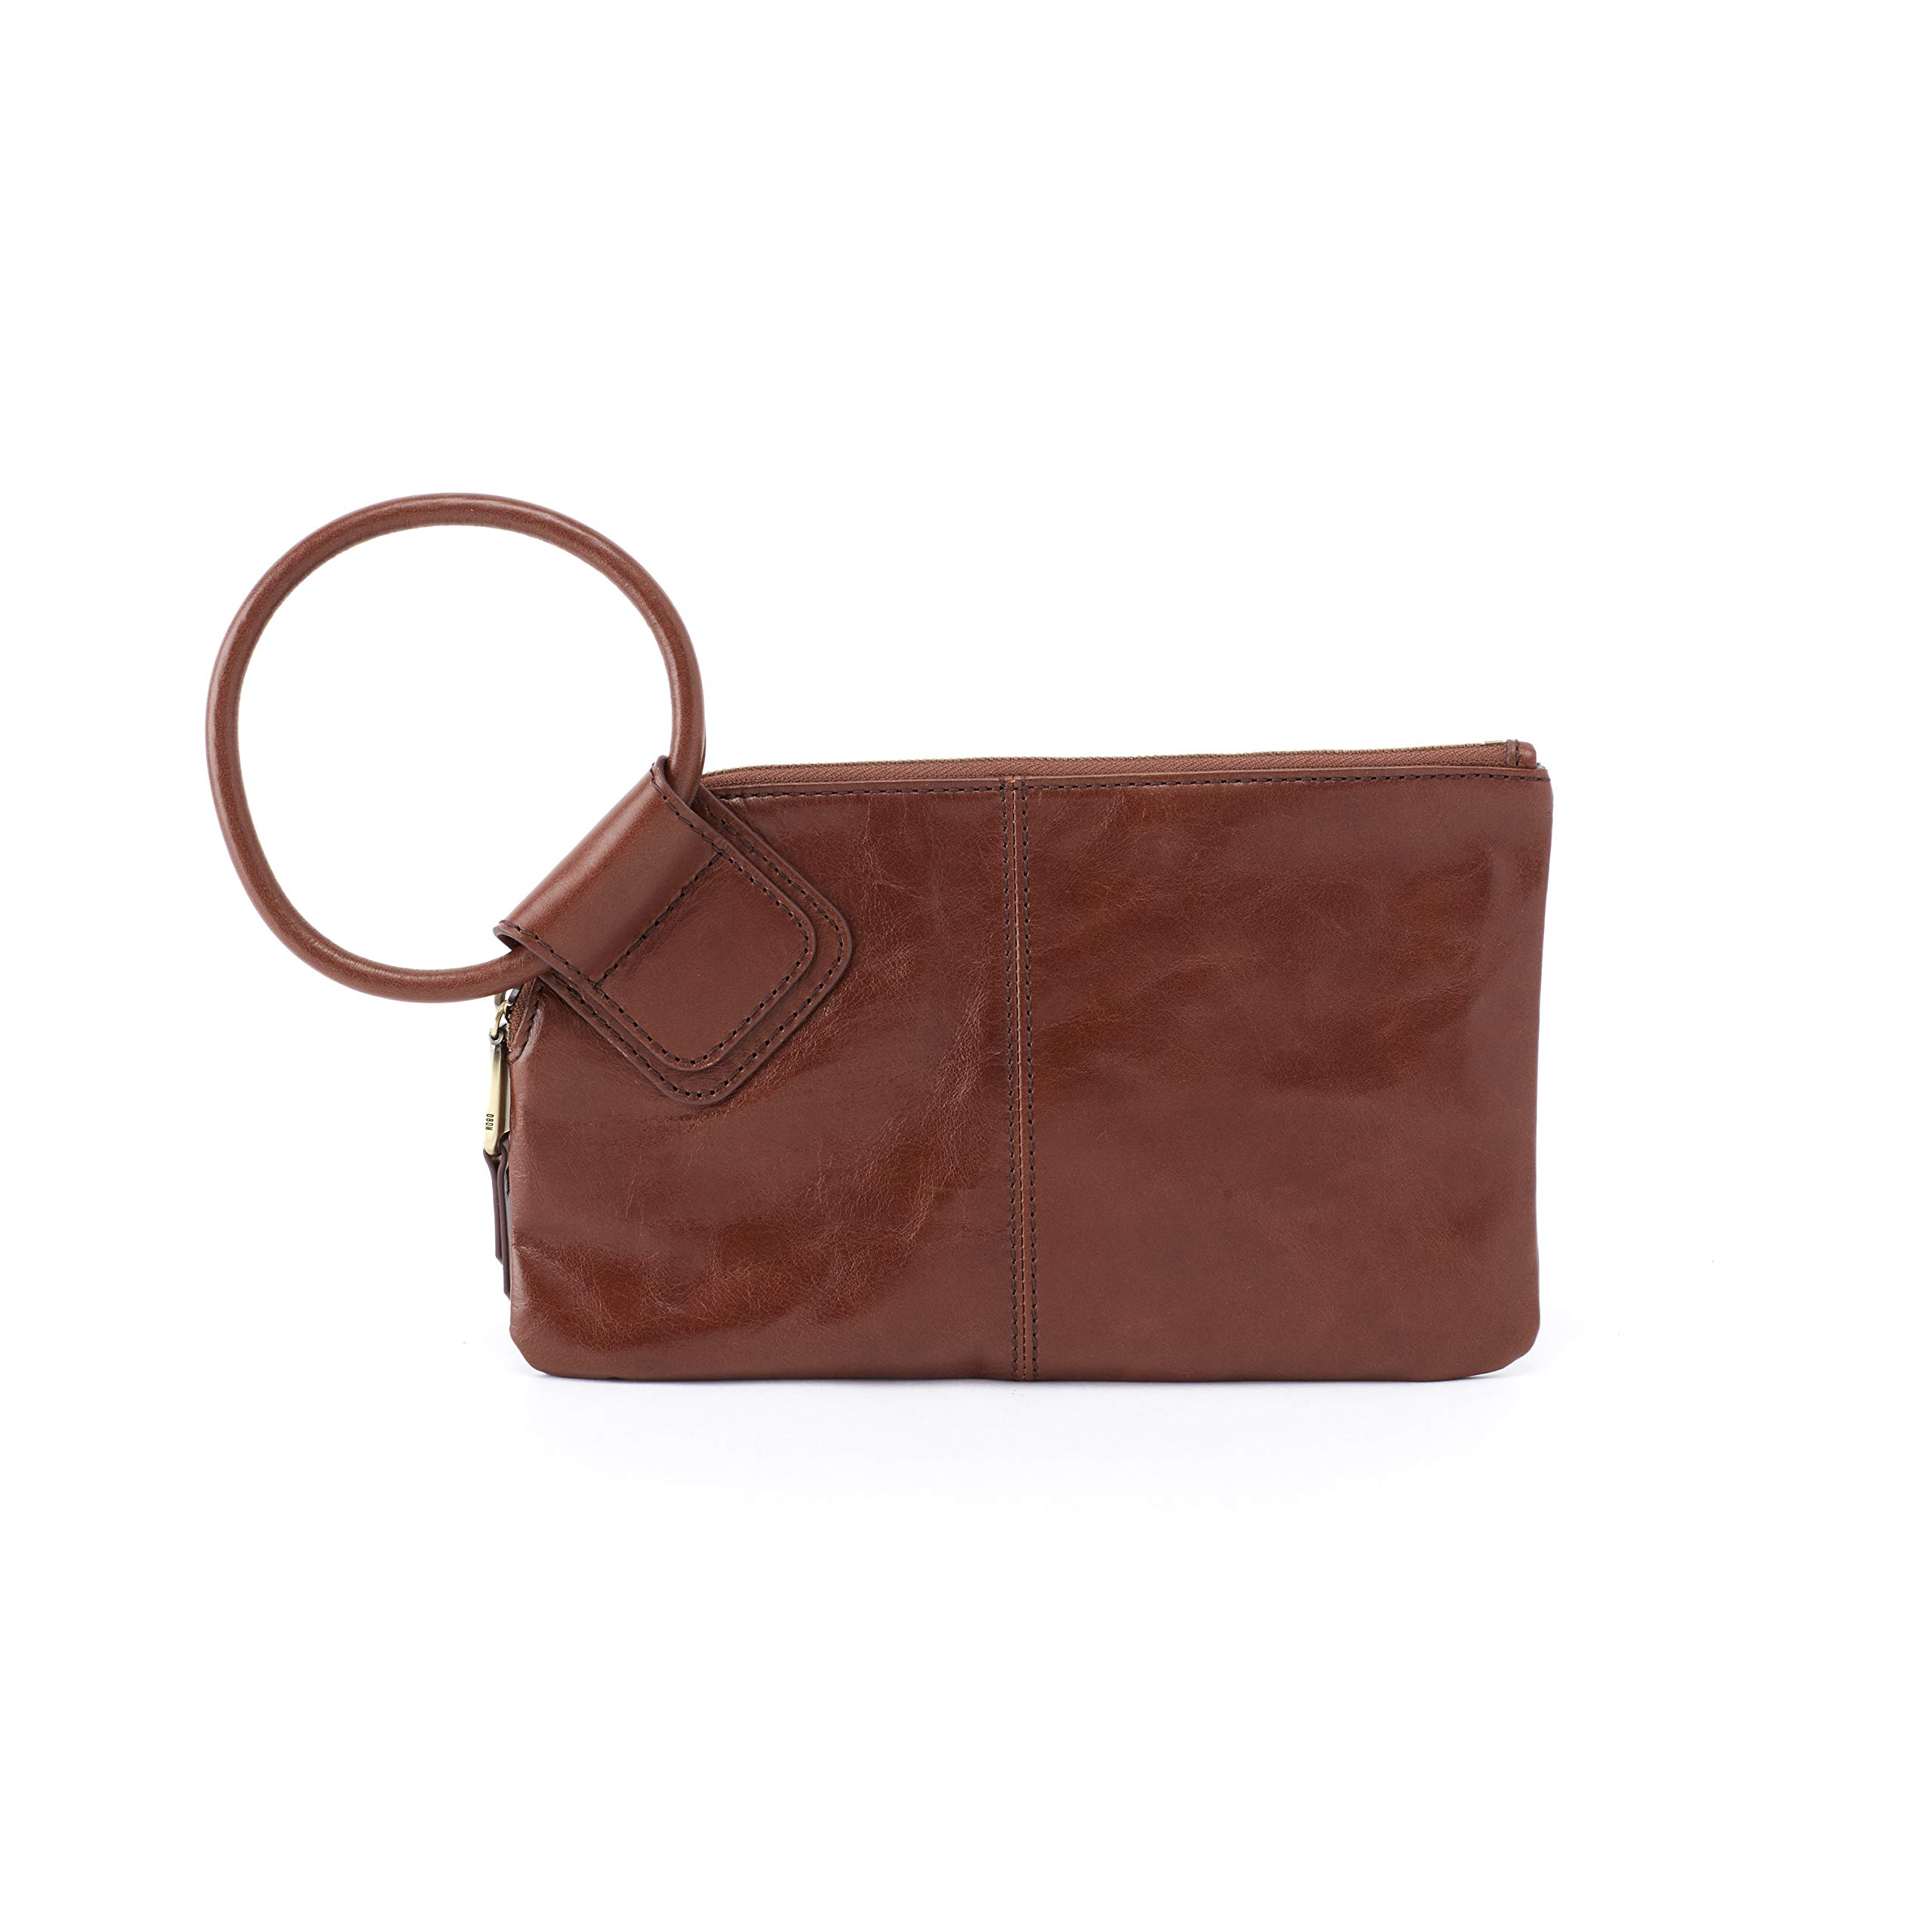 Hobo Women's Leather Sable Wristlet Clutch Wallet (Woodlands)